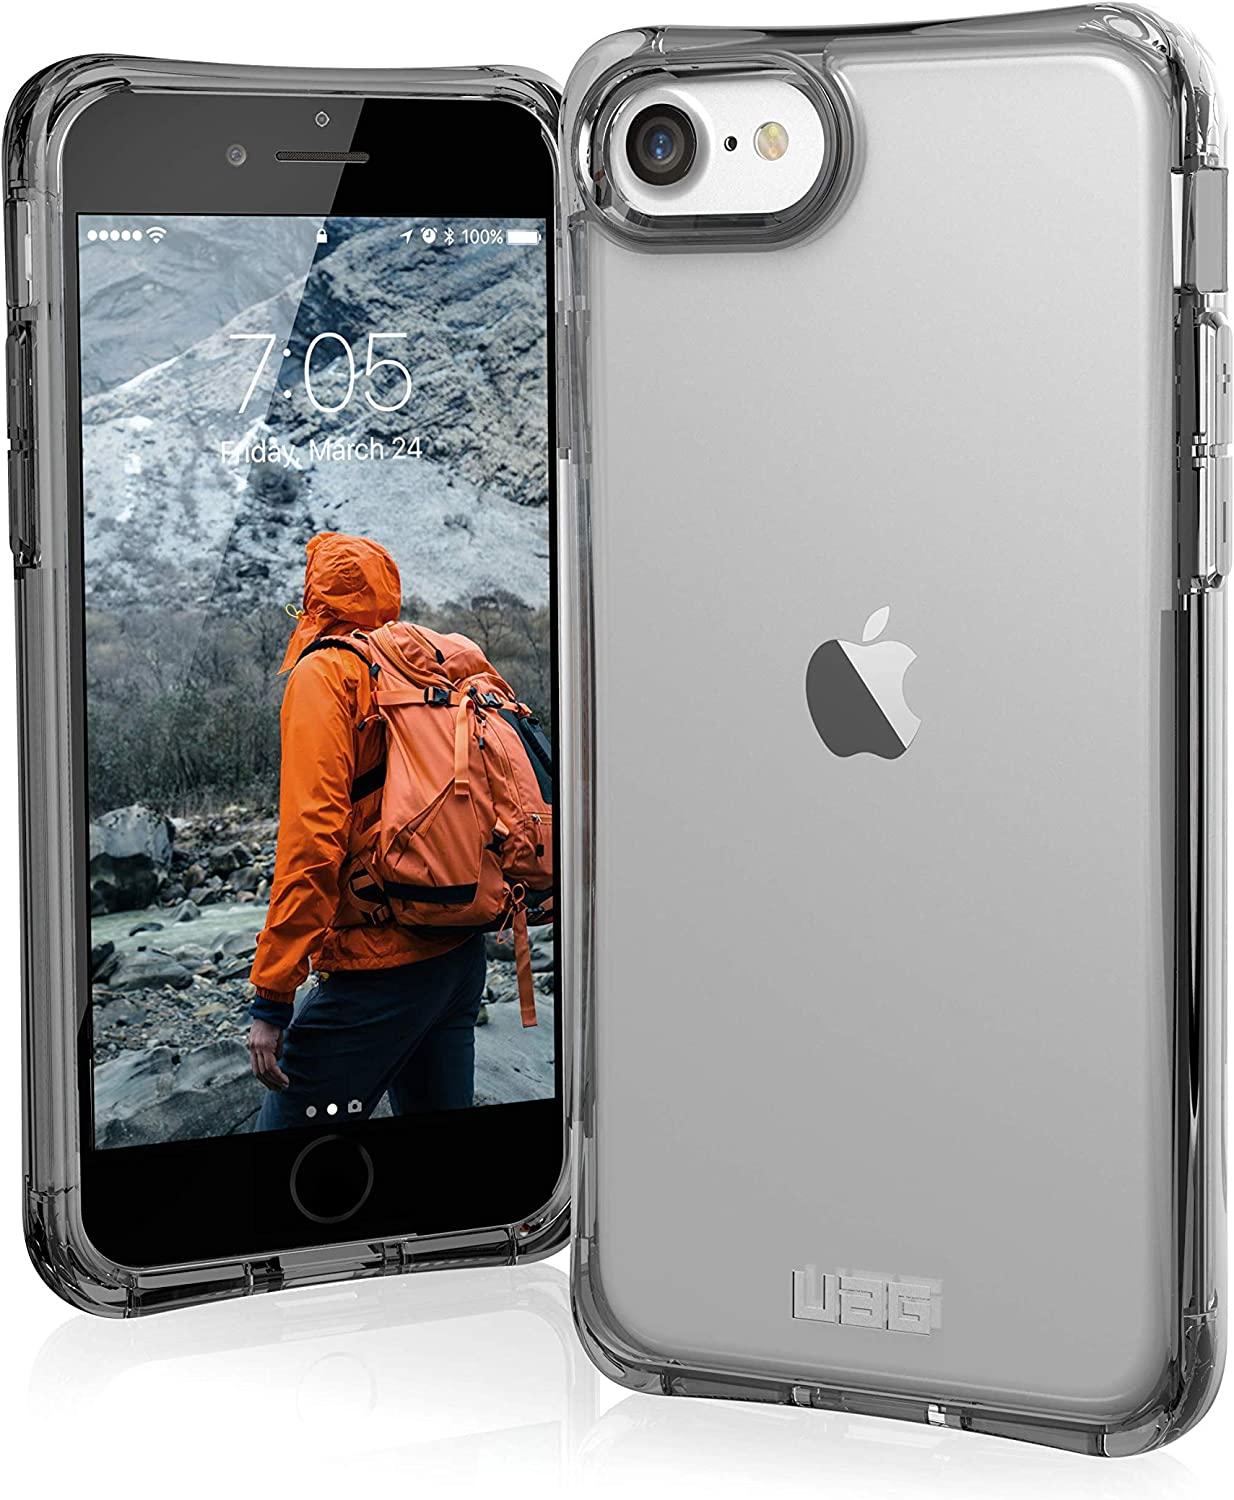 Urban Armor Gear UAG Designed for iPhone SE (2020)/iPhone 8/iPhone 7 [4.7-inch] Plyo Case Clear Impact Resistant Military Drop Tested Protective Cover, Ice